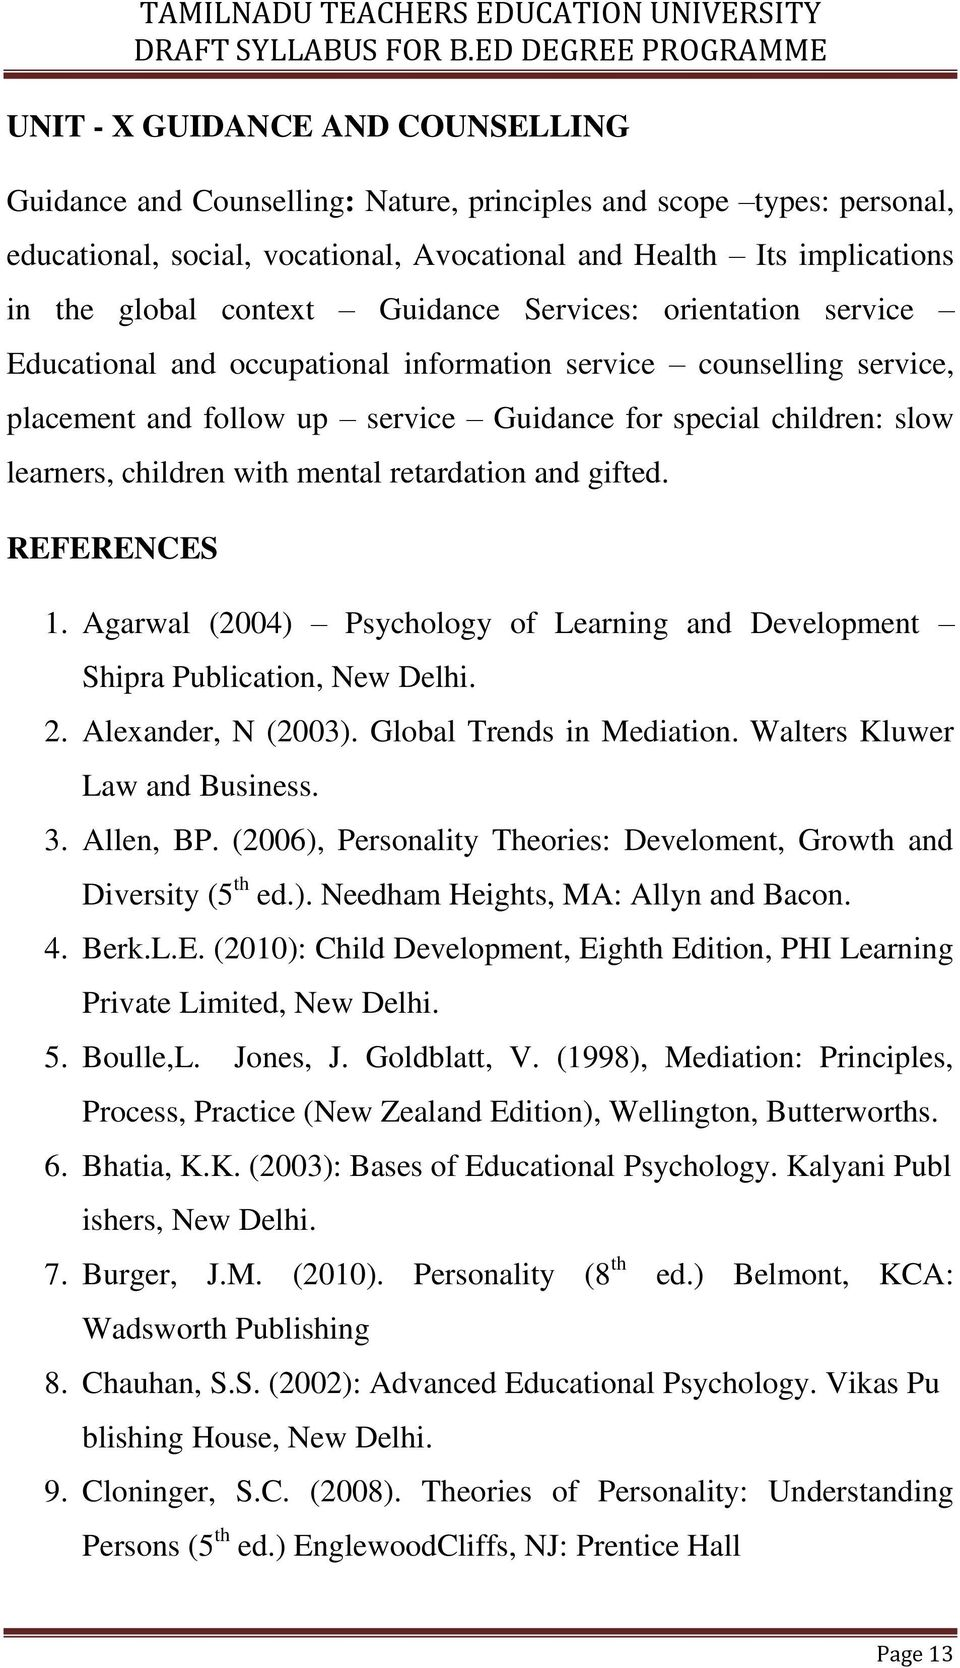 children with mental retardation and gifted. REFERENCES 1. Agarwal (2004) Psychology of Learning and Development Shipra Publication, New Delhi. 2. Alexander, N (2003). Global Trends in Mediation.